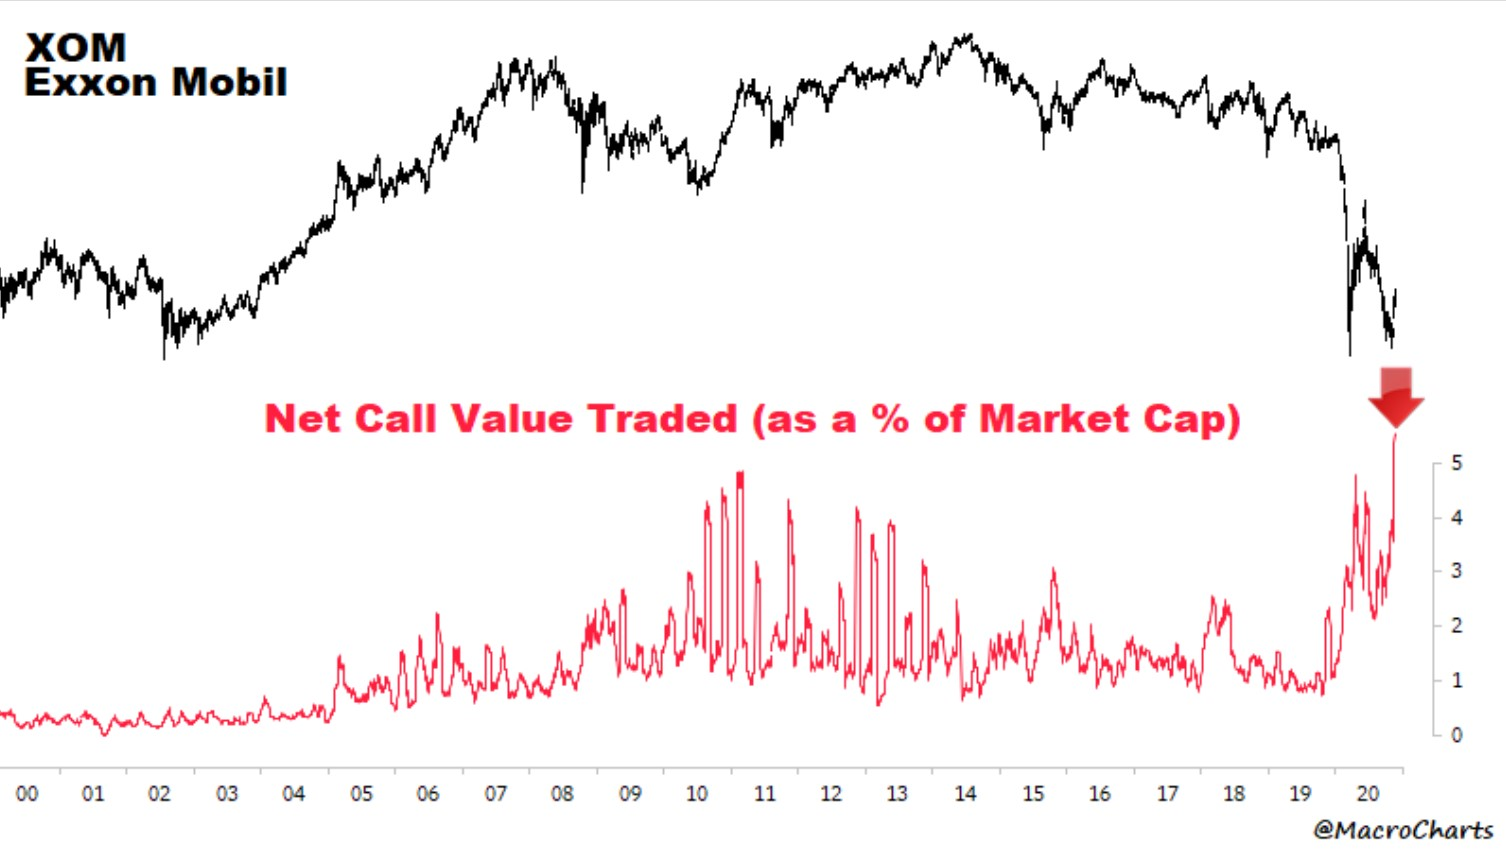 Exxon Mobil (XOM) chart and Net call value traded (as a % of Market cap)